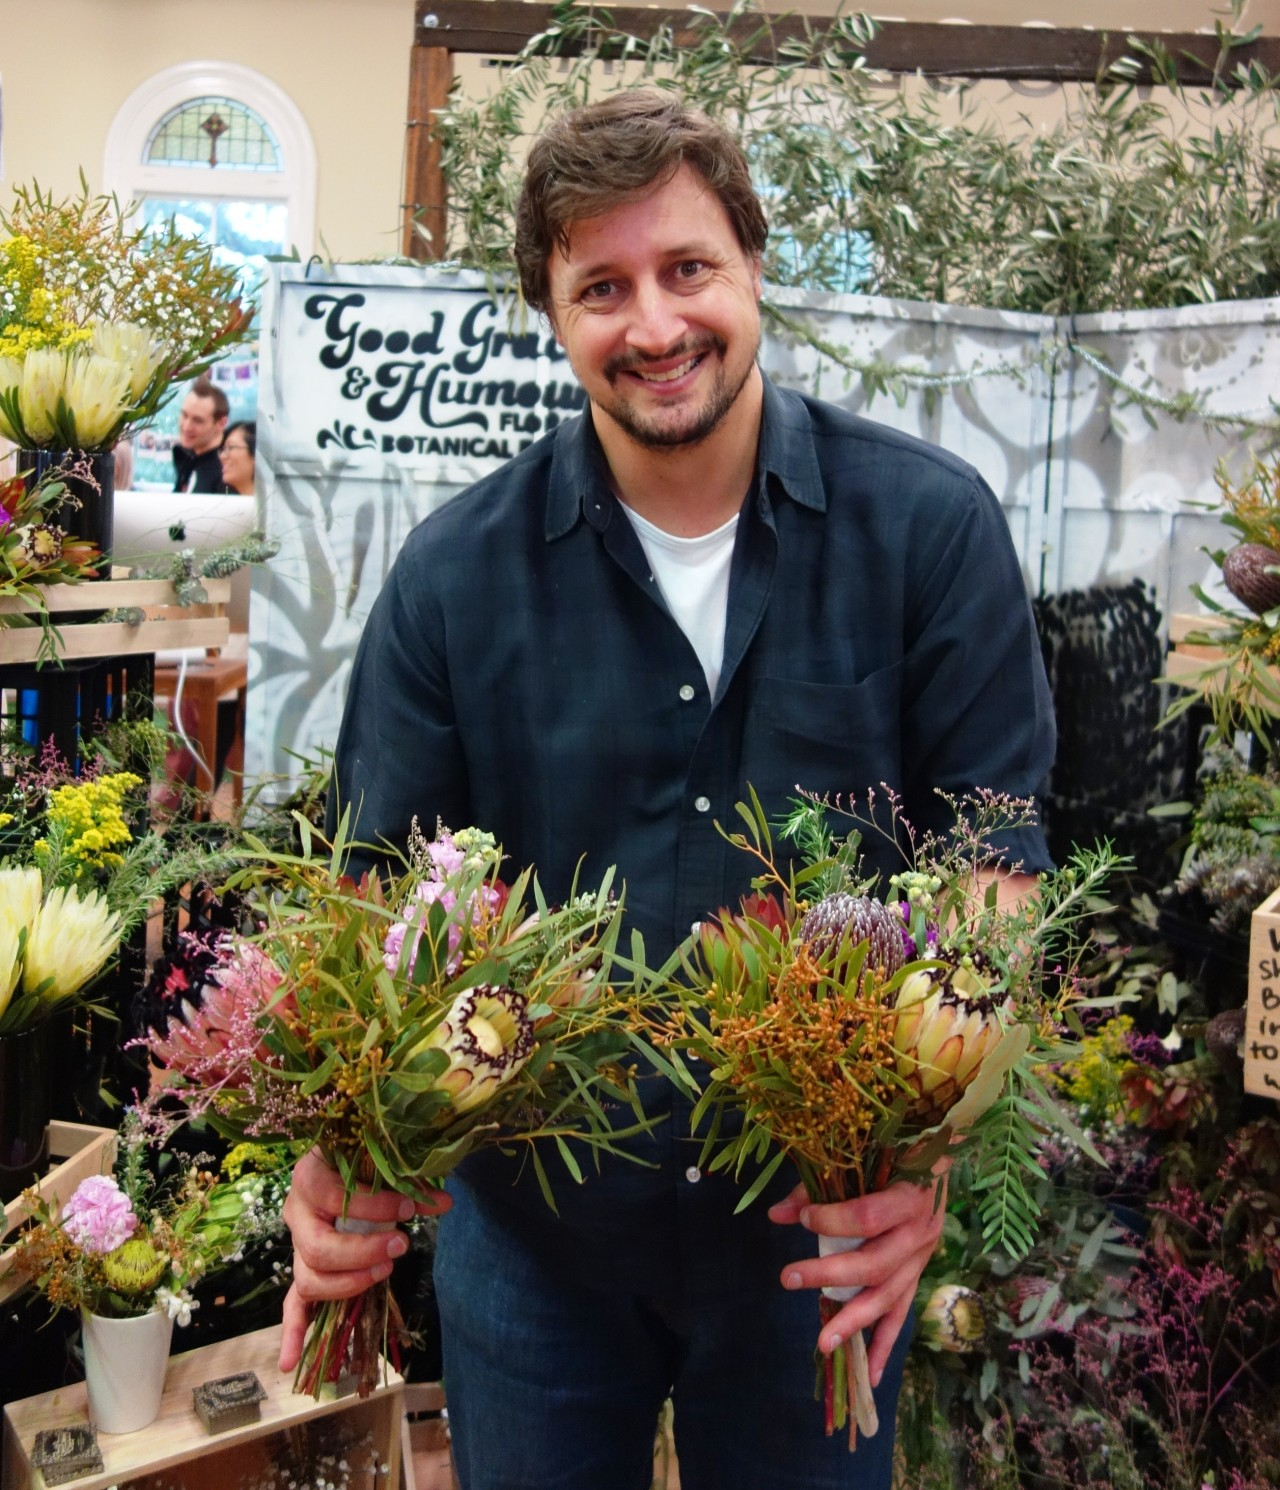 Gavin with bouquets